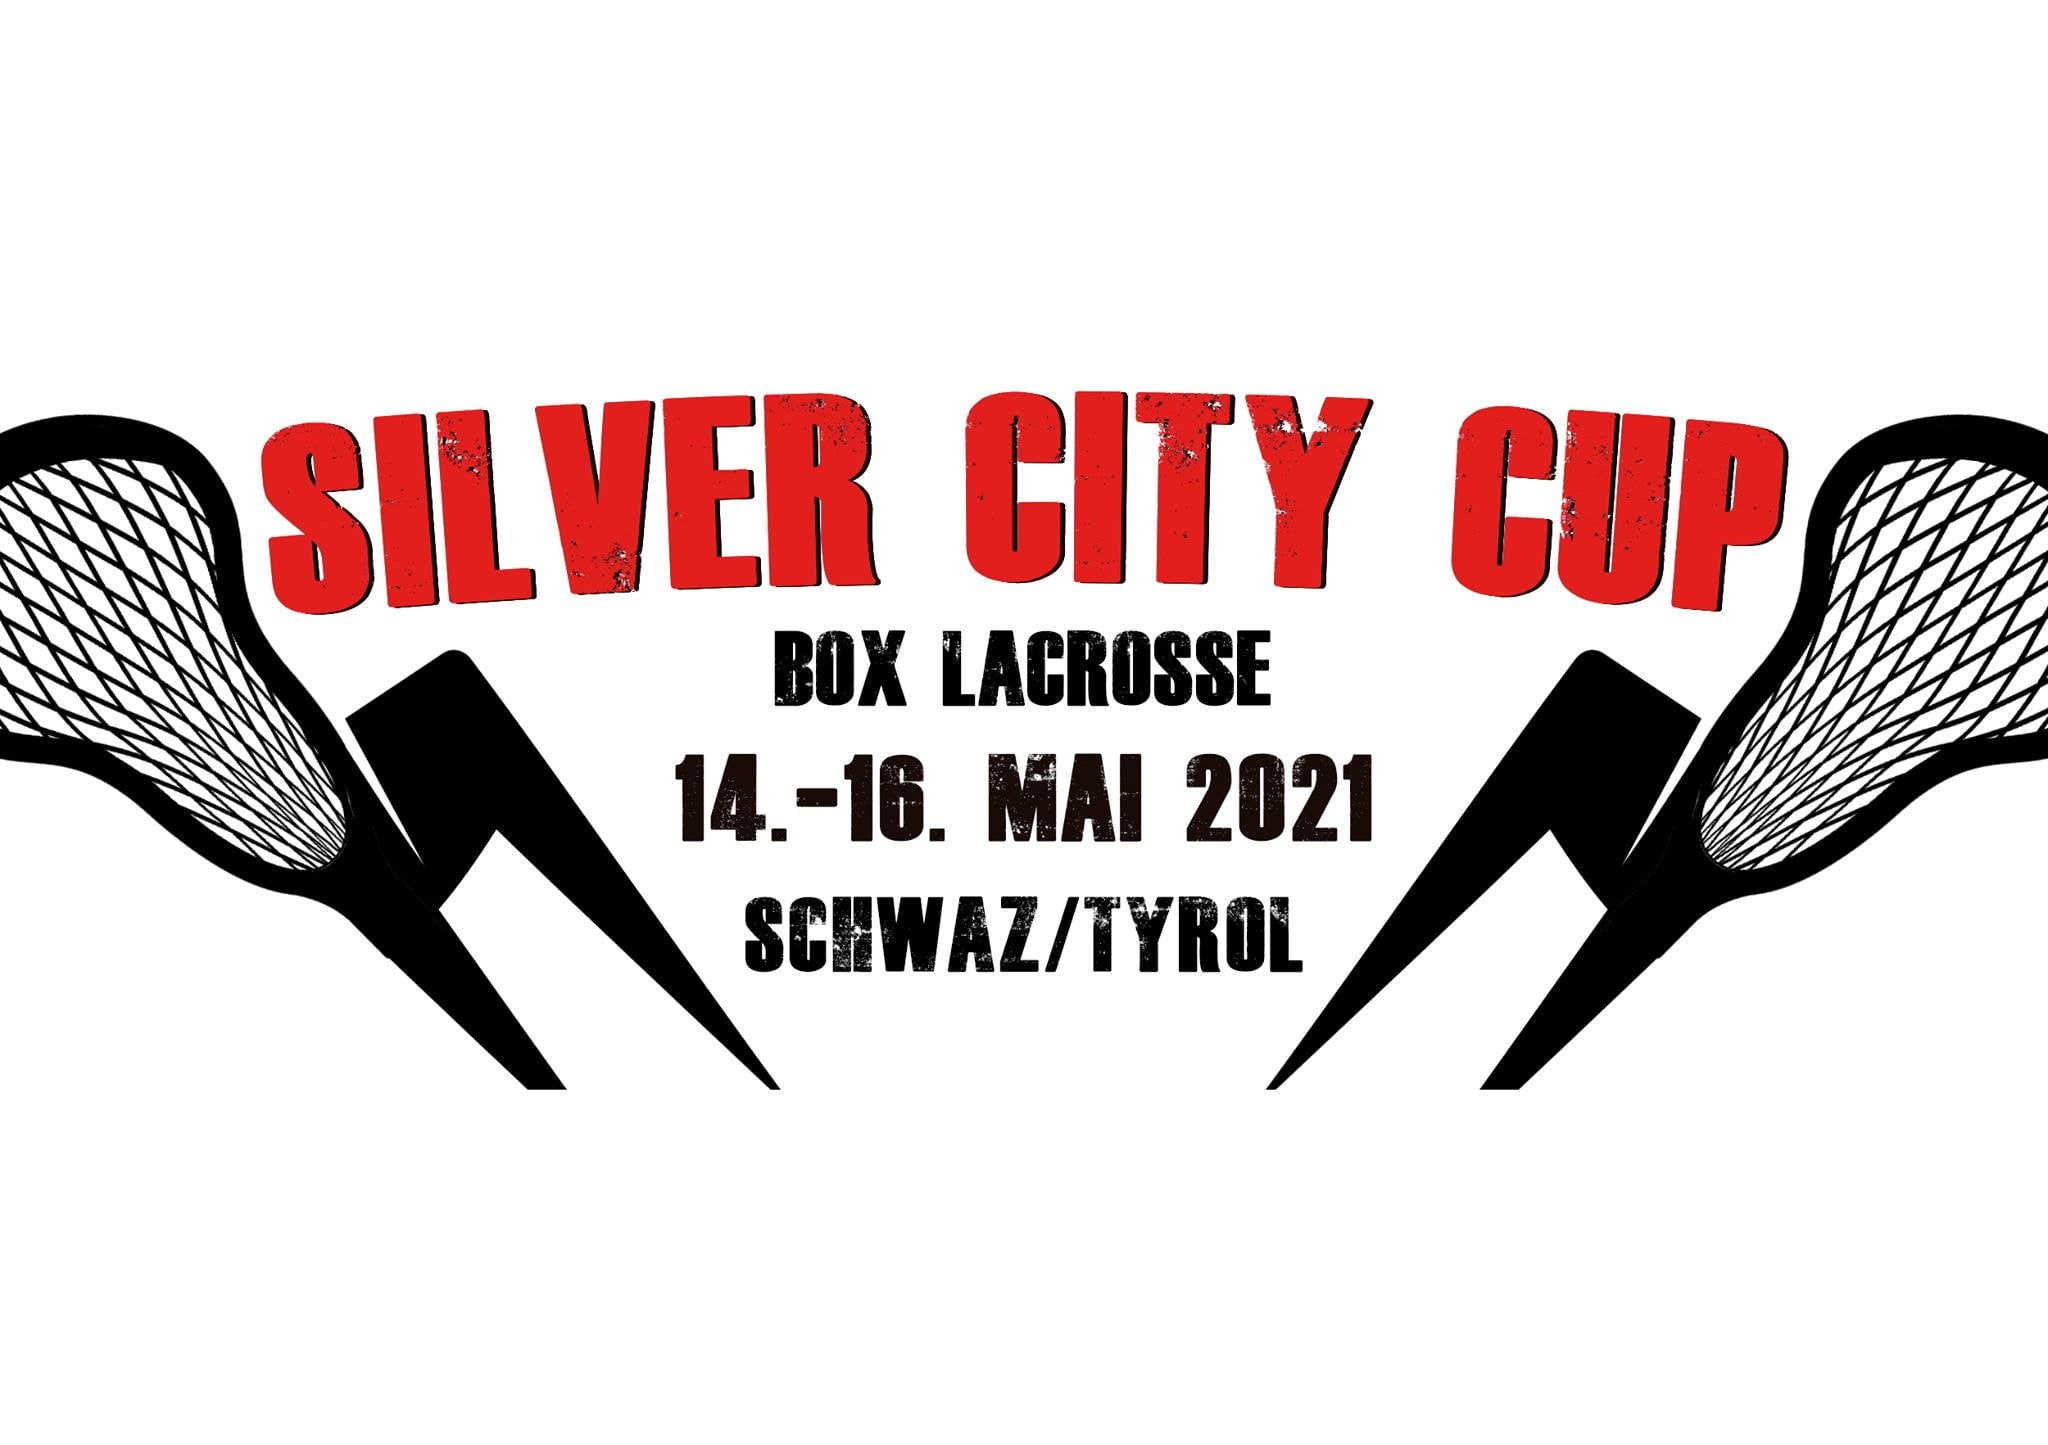 Silver City Cup